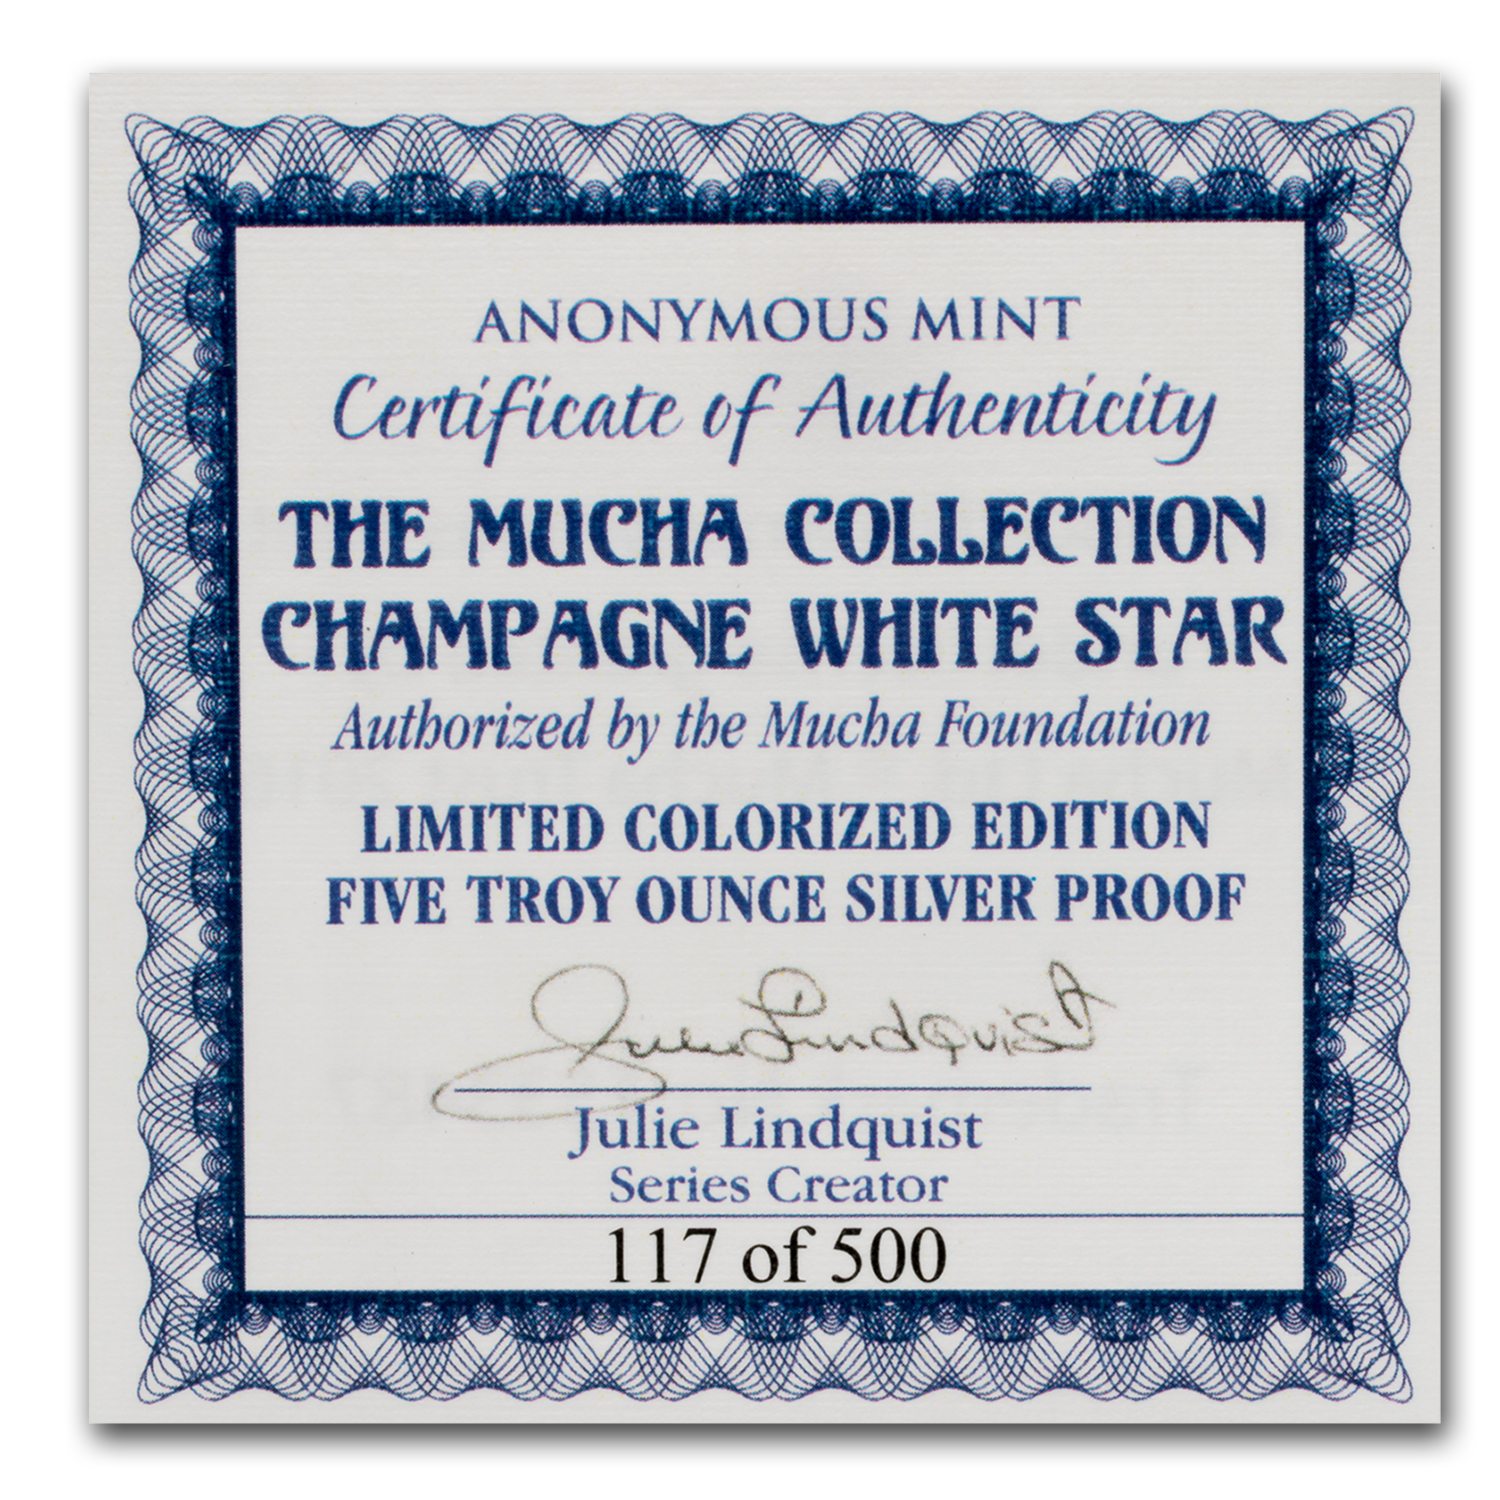 5 oz Silver Colorized Proof Mucha Collection Champagne White Star